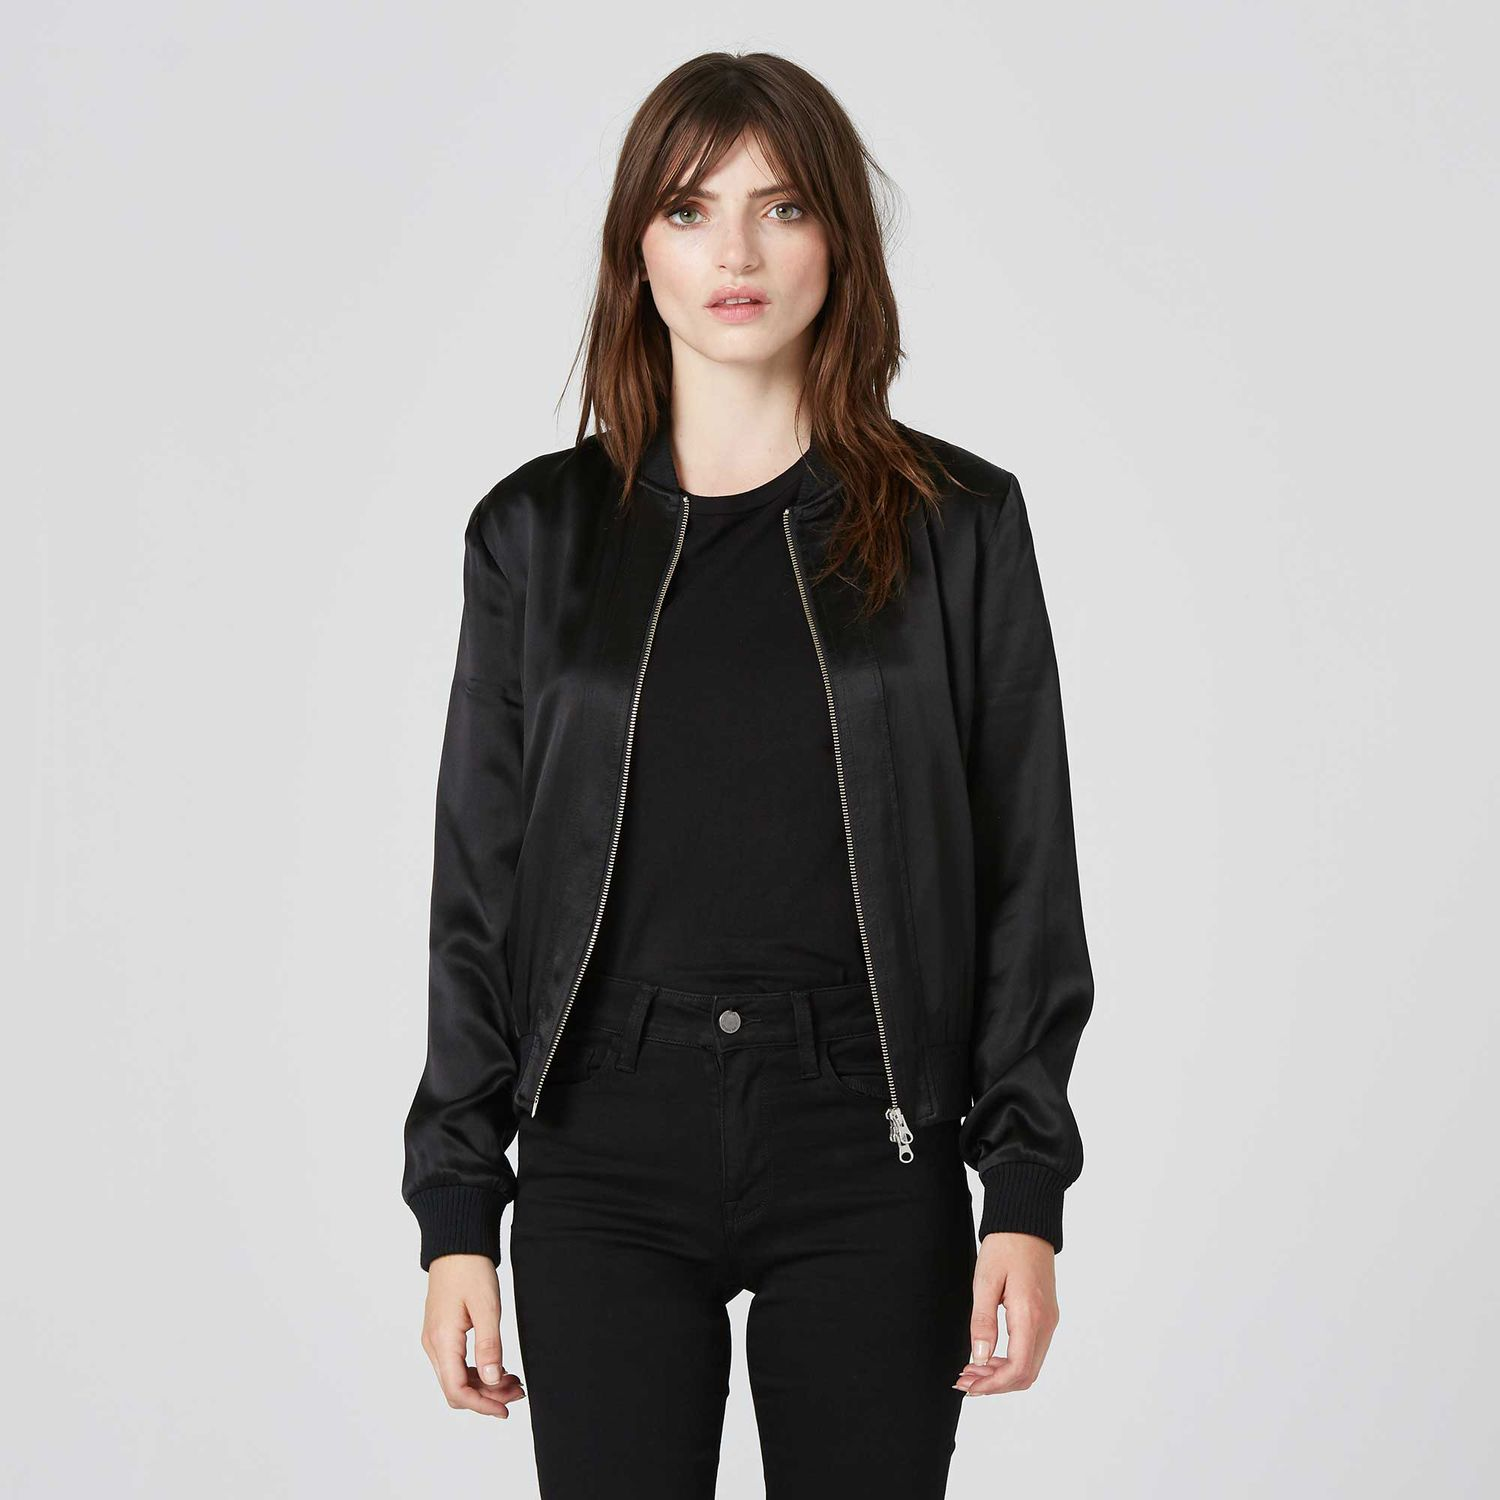 Bomber Jackets for Women Comfortable can be stylish in